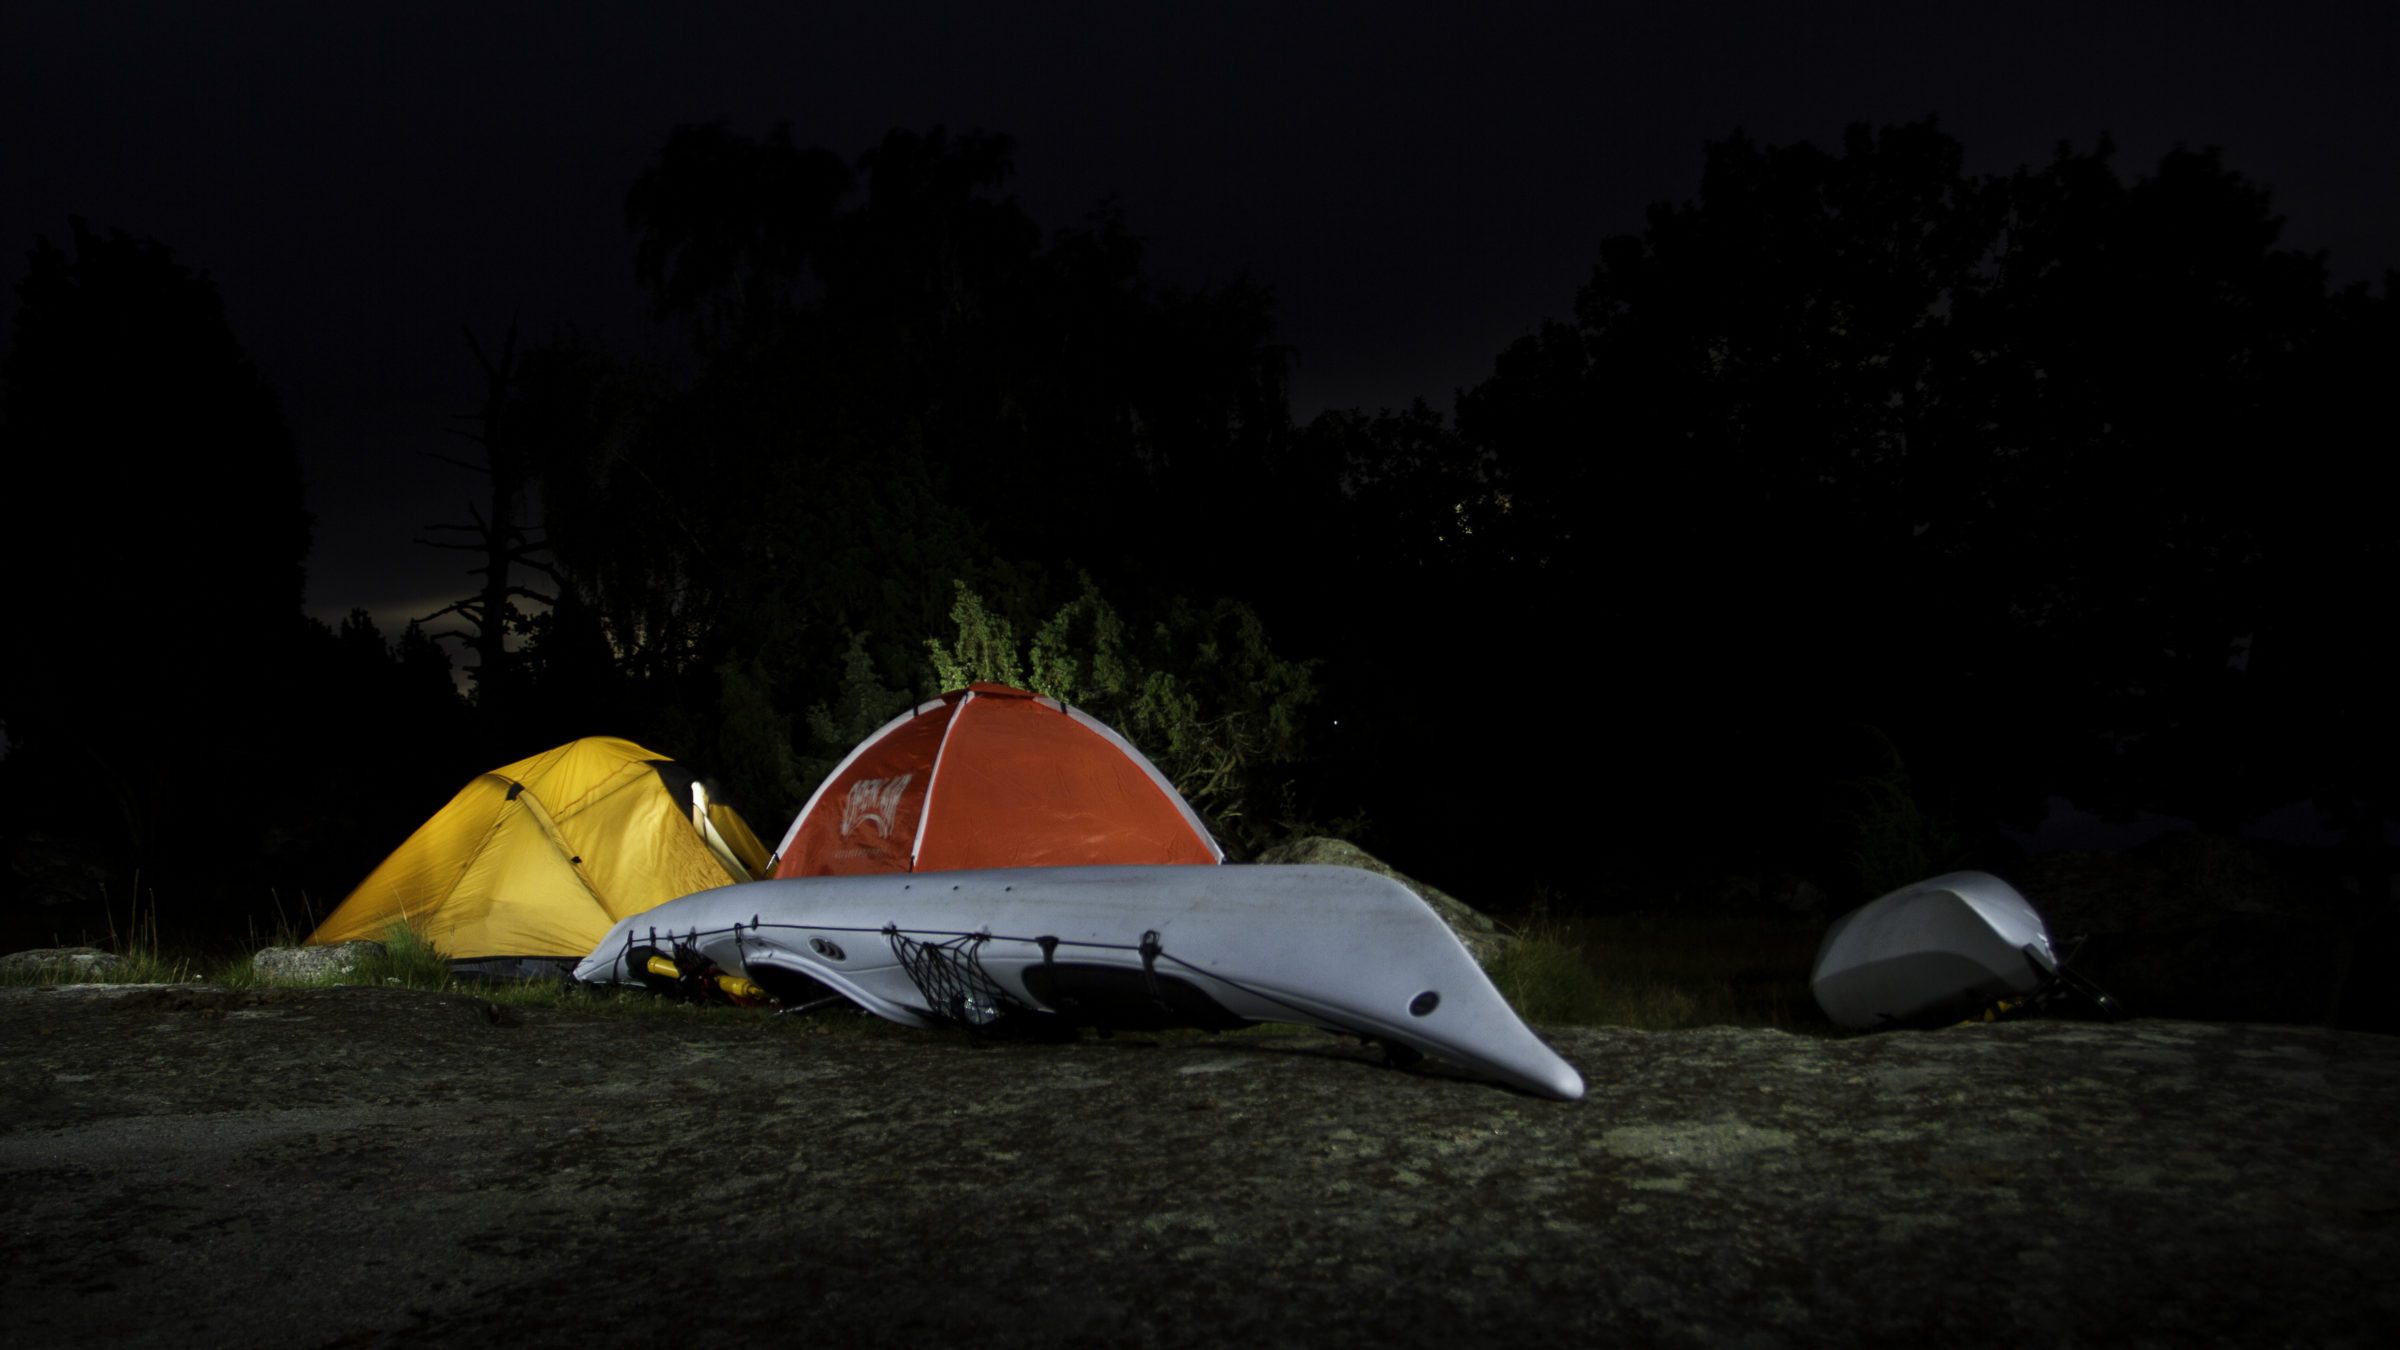 Camp tents set up in the Long Island Pine Barrens at night